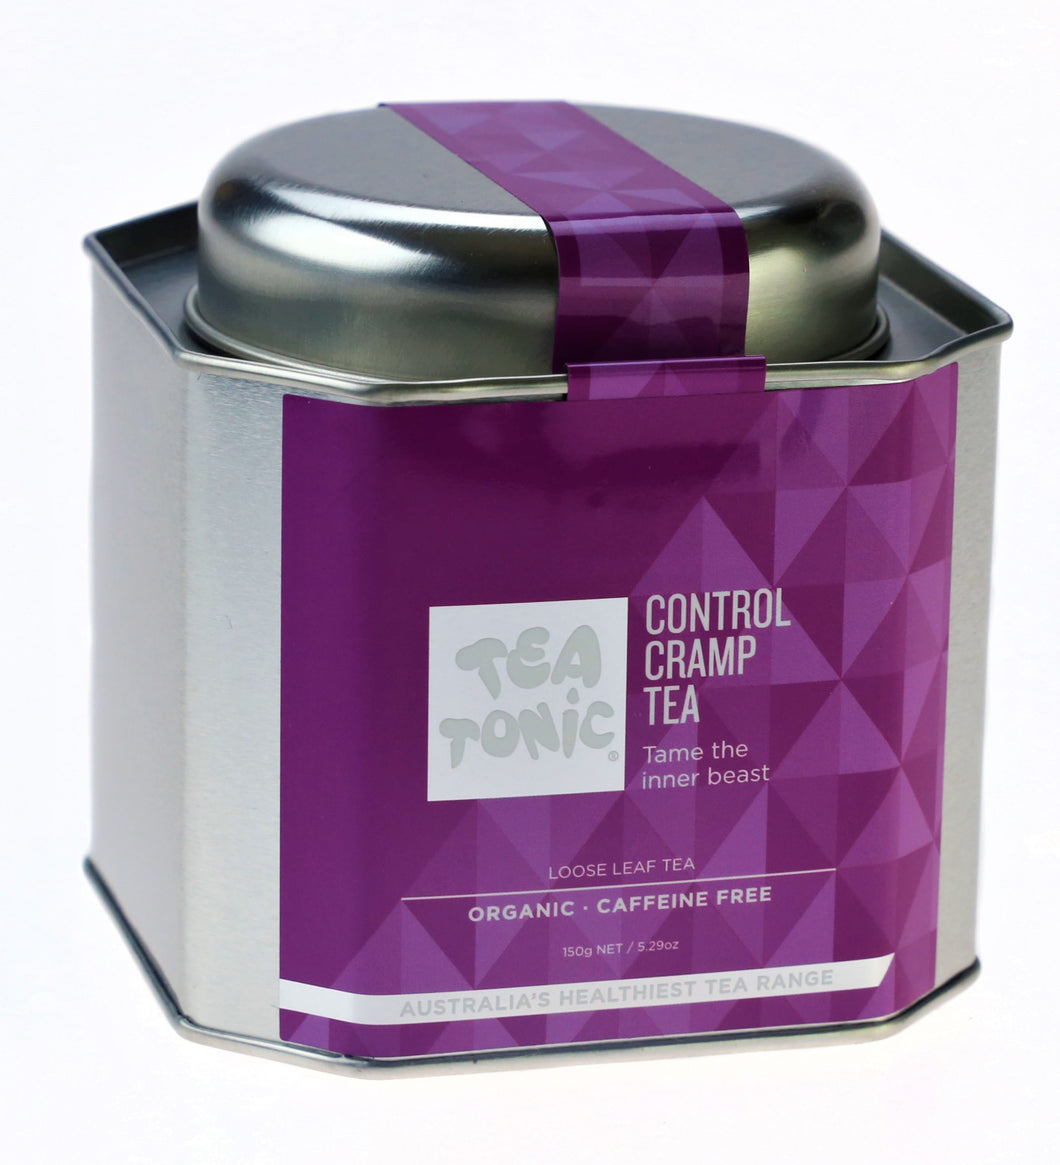 Control Cramp Tea Loose Leaf Caddy Tin